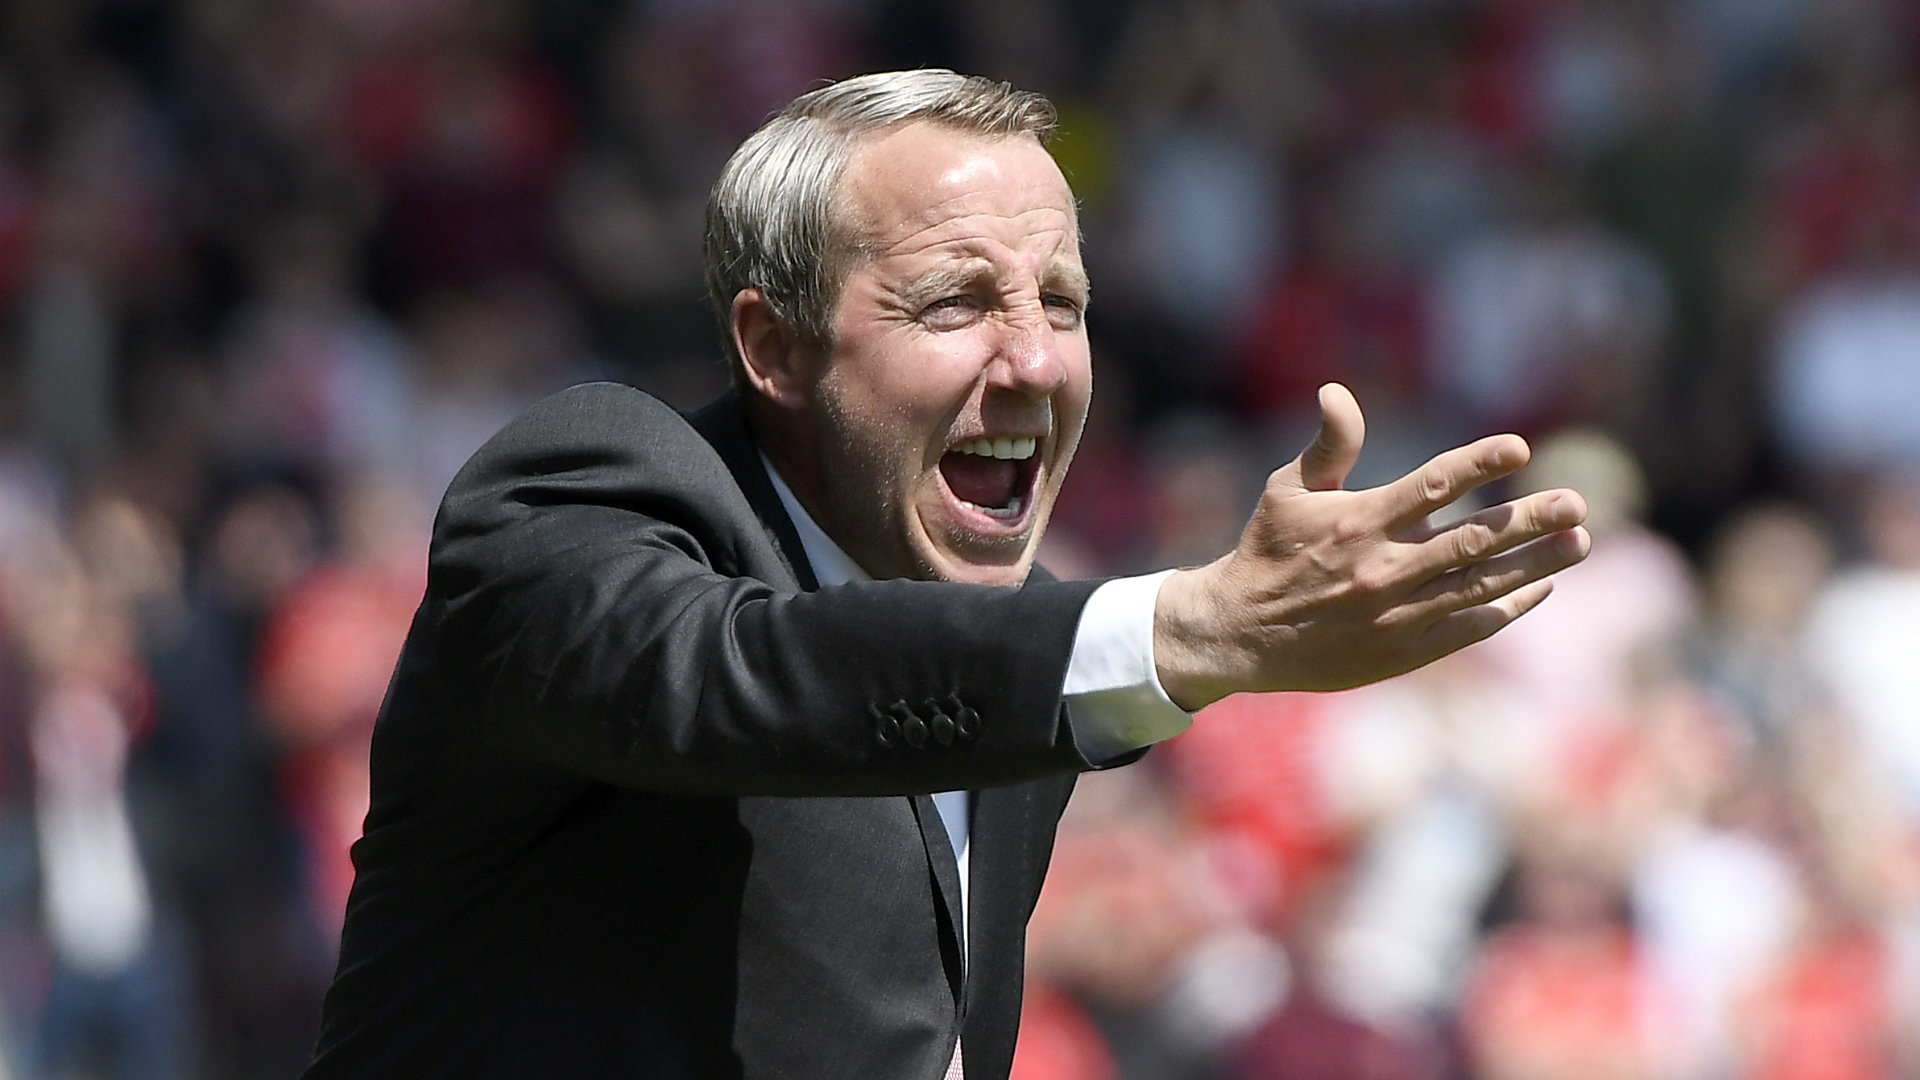 Lee Bowyer Charlton manager 2018-19